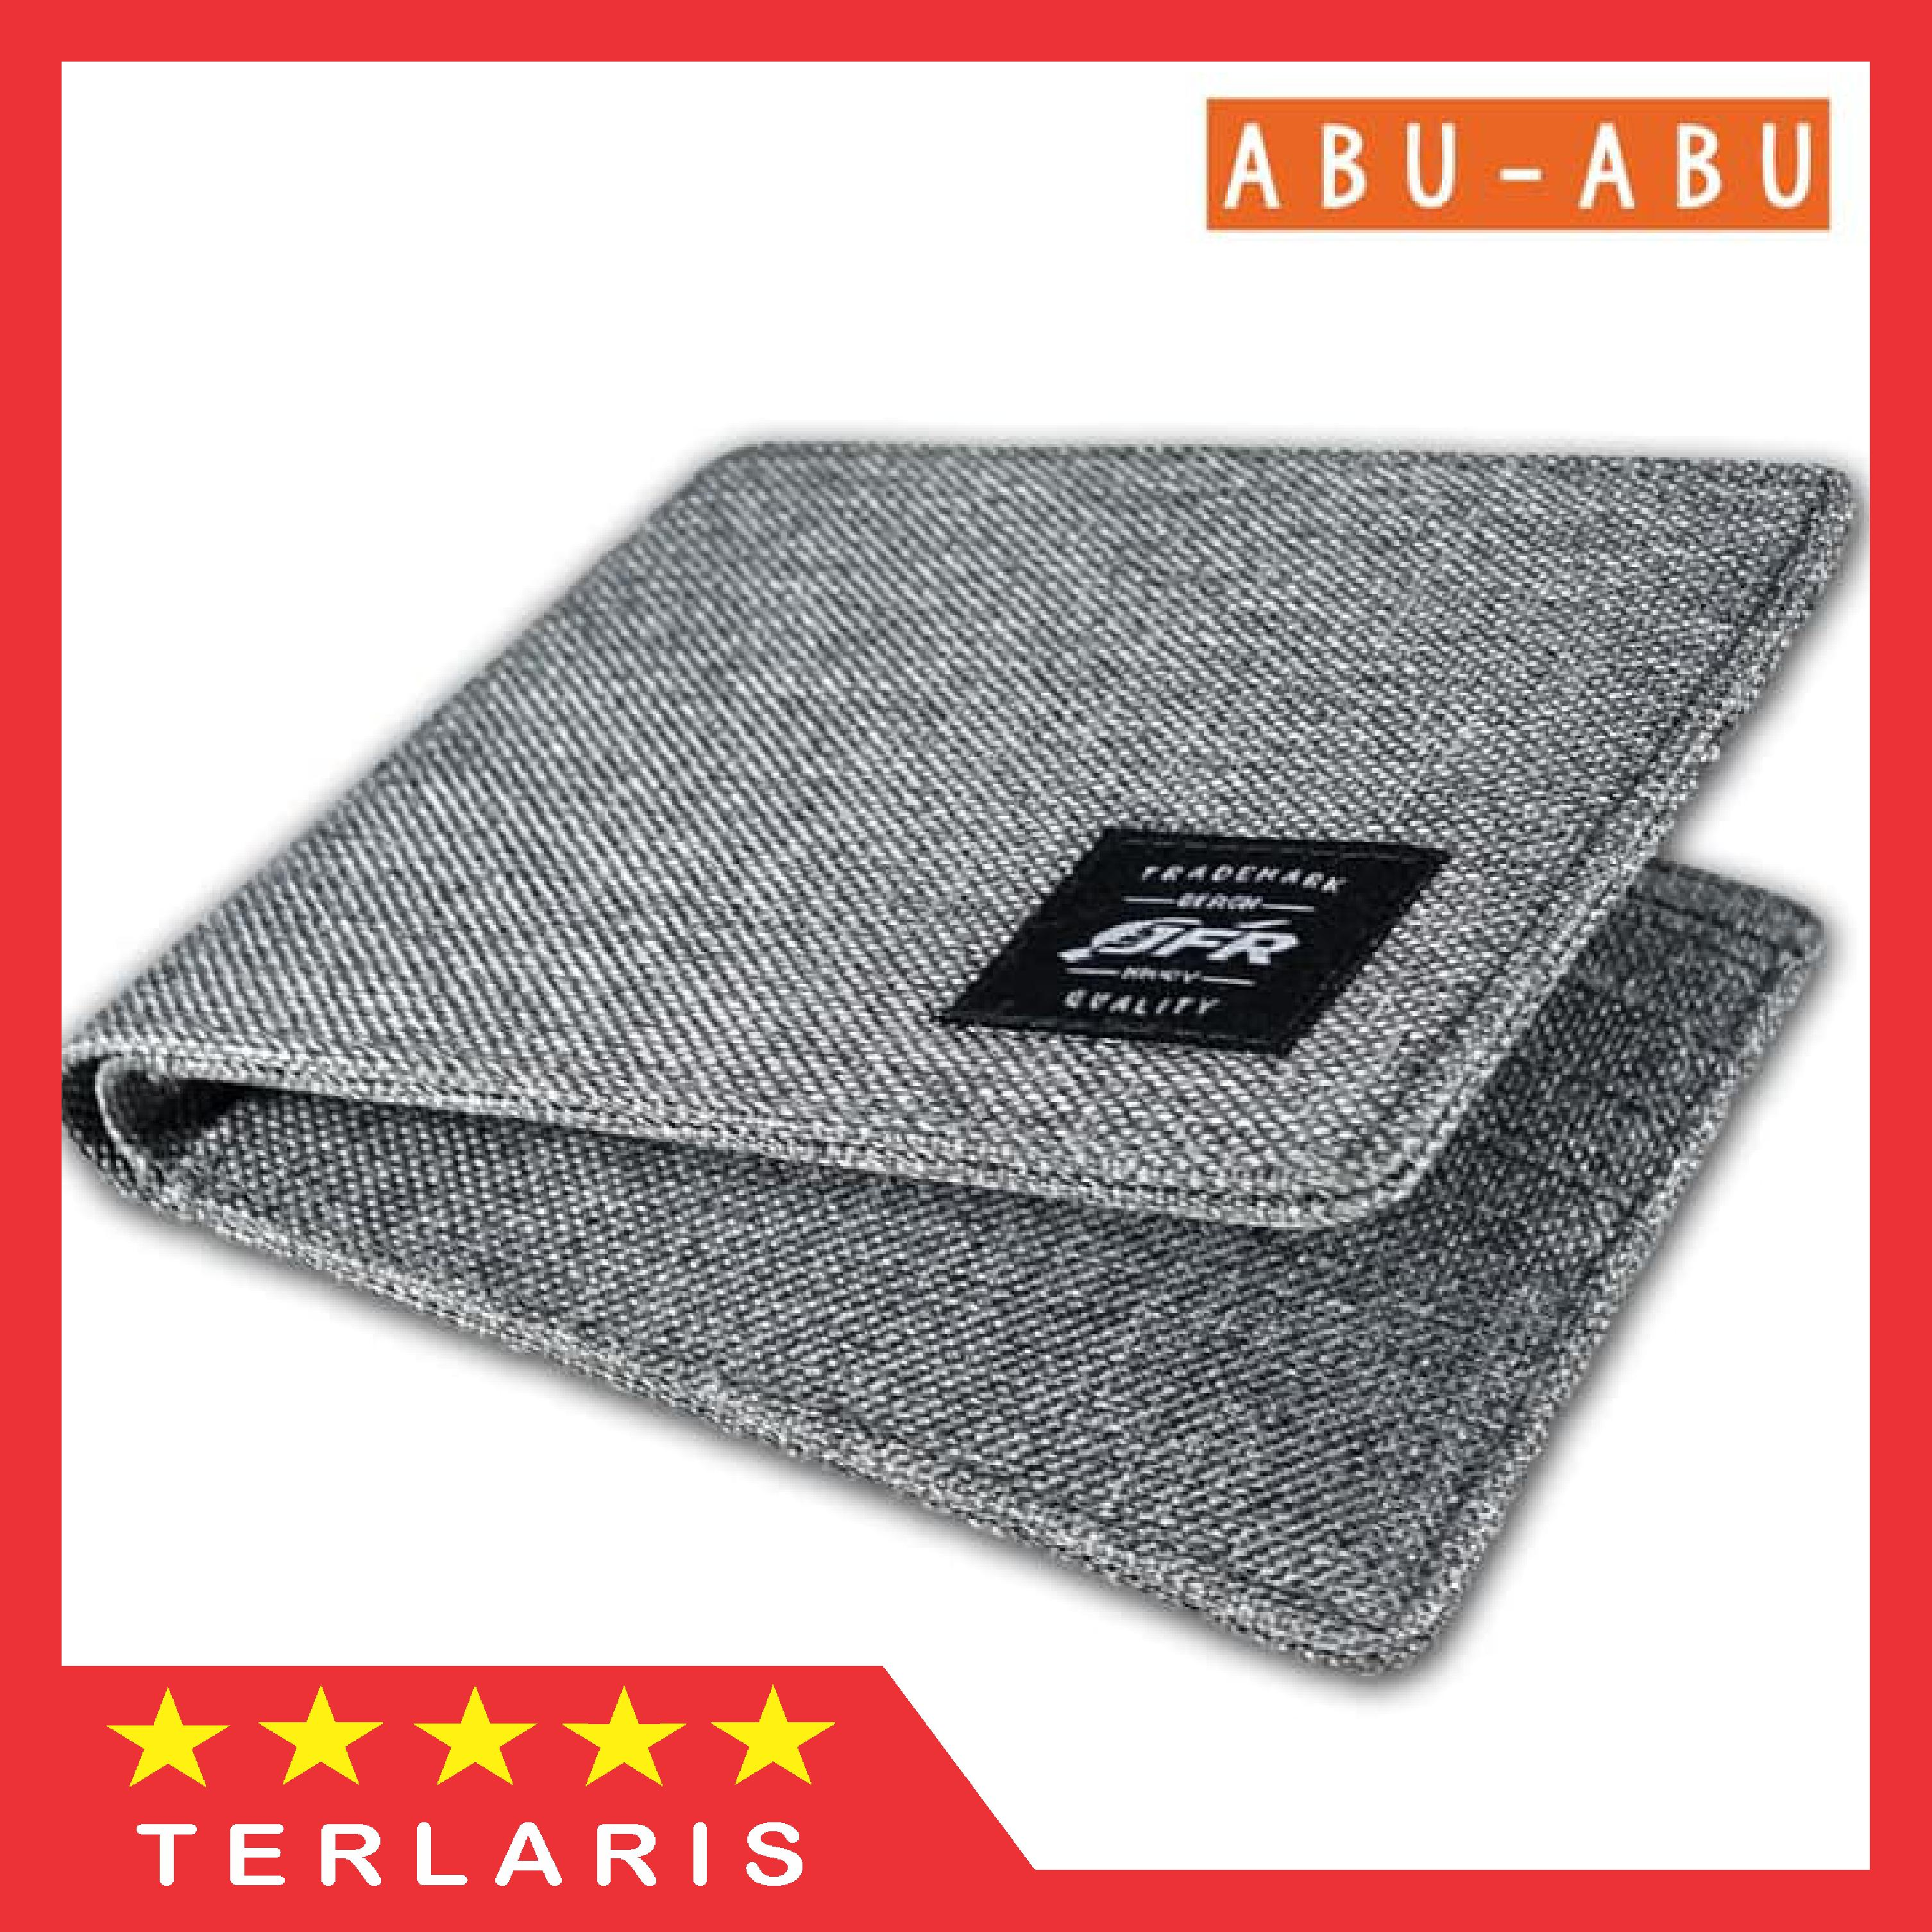 Fashion Dompet Pria Bahan Kulit Canvas Bagus Murah Keren Jp10 / Dompet Canvas Casual / Dompet Canvas Simpel By Red Trade.